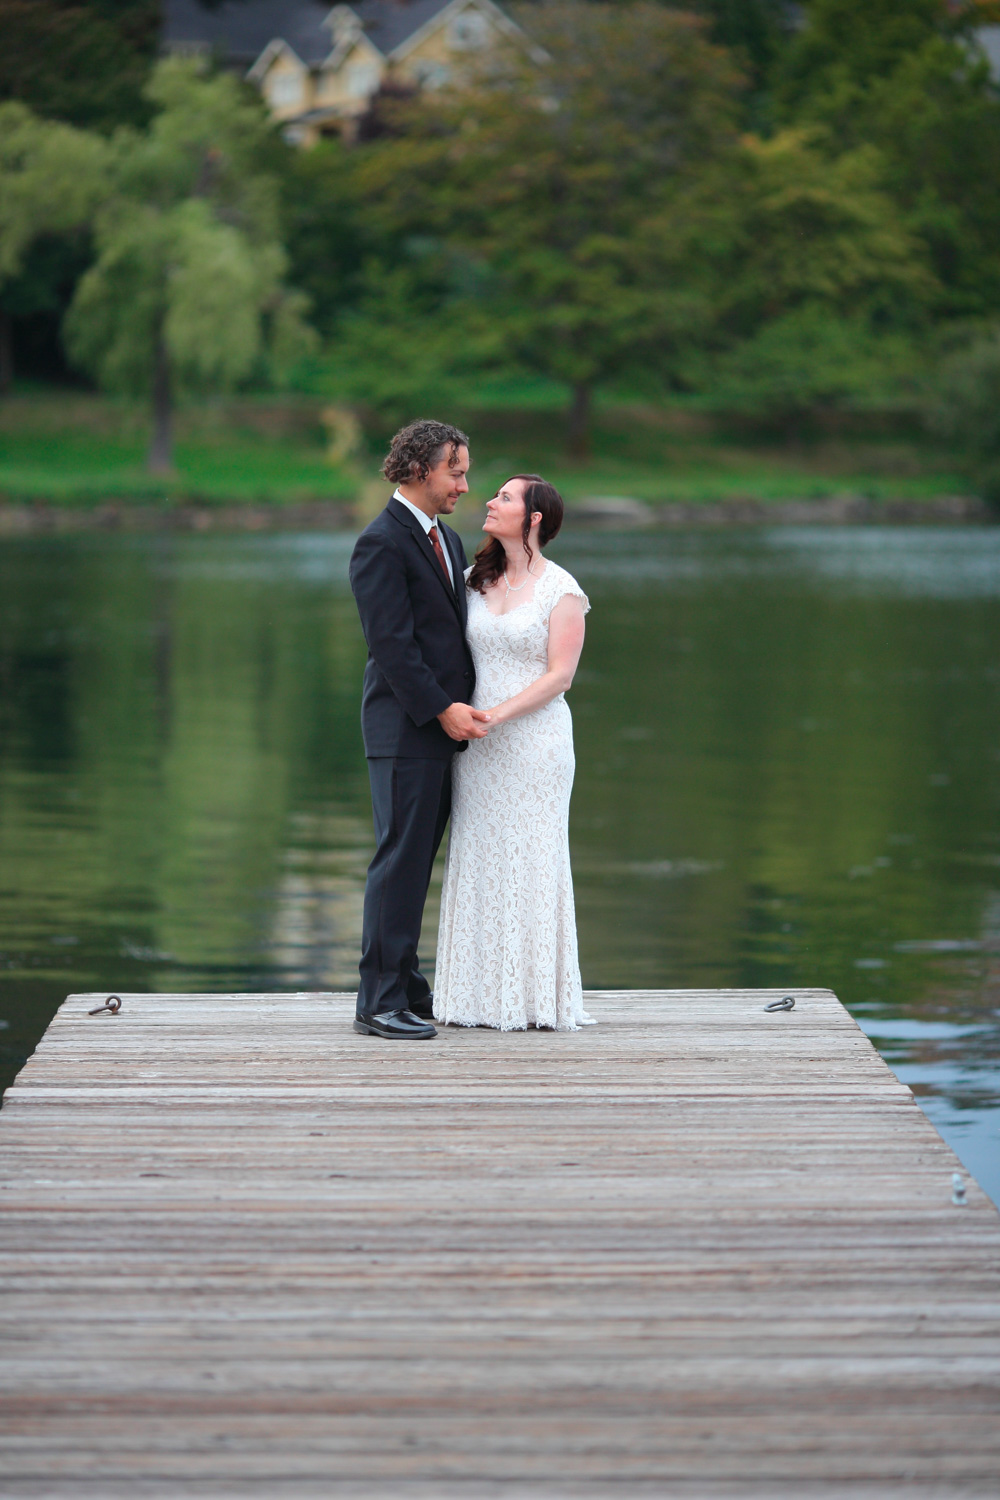 Wedding Mt Baker Rowing Club Seattle Washington 24.jpg